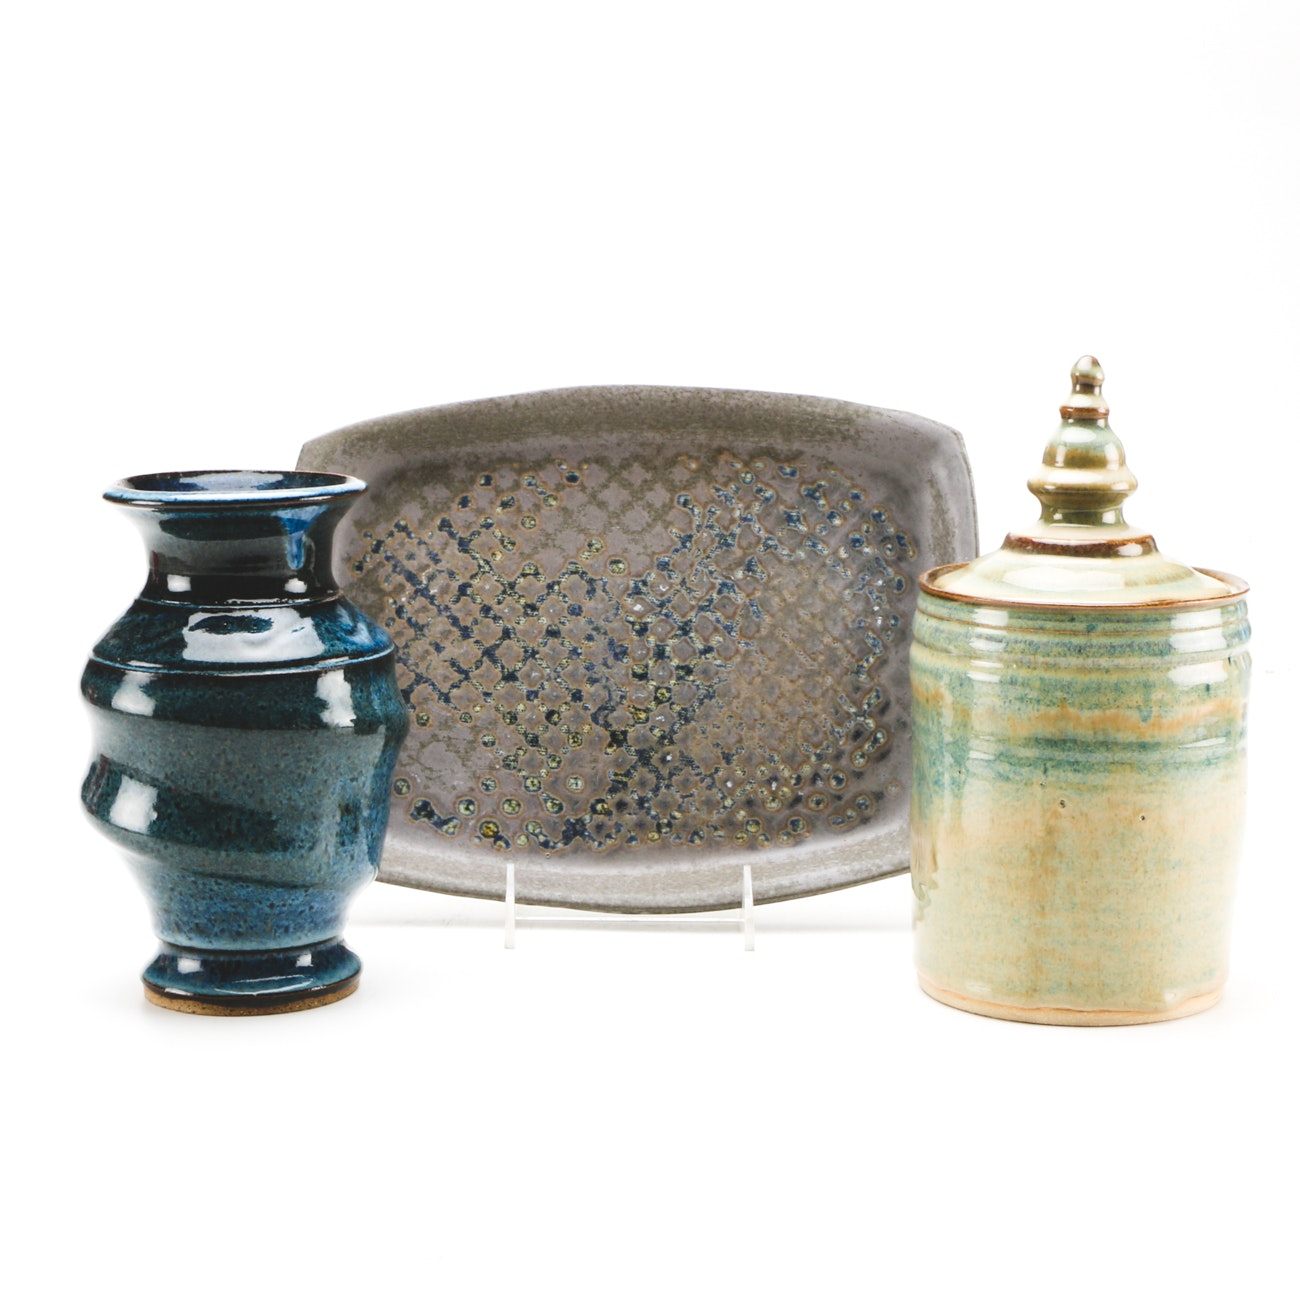 Thrown Stoneware and Porcelain Tableware and Decor